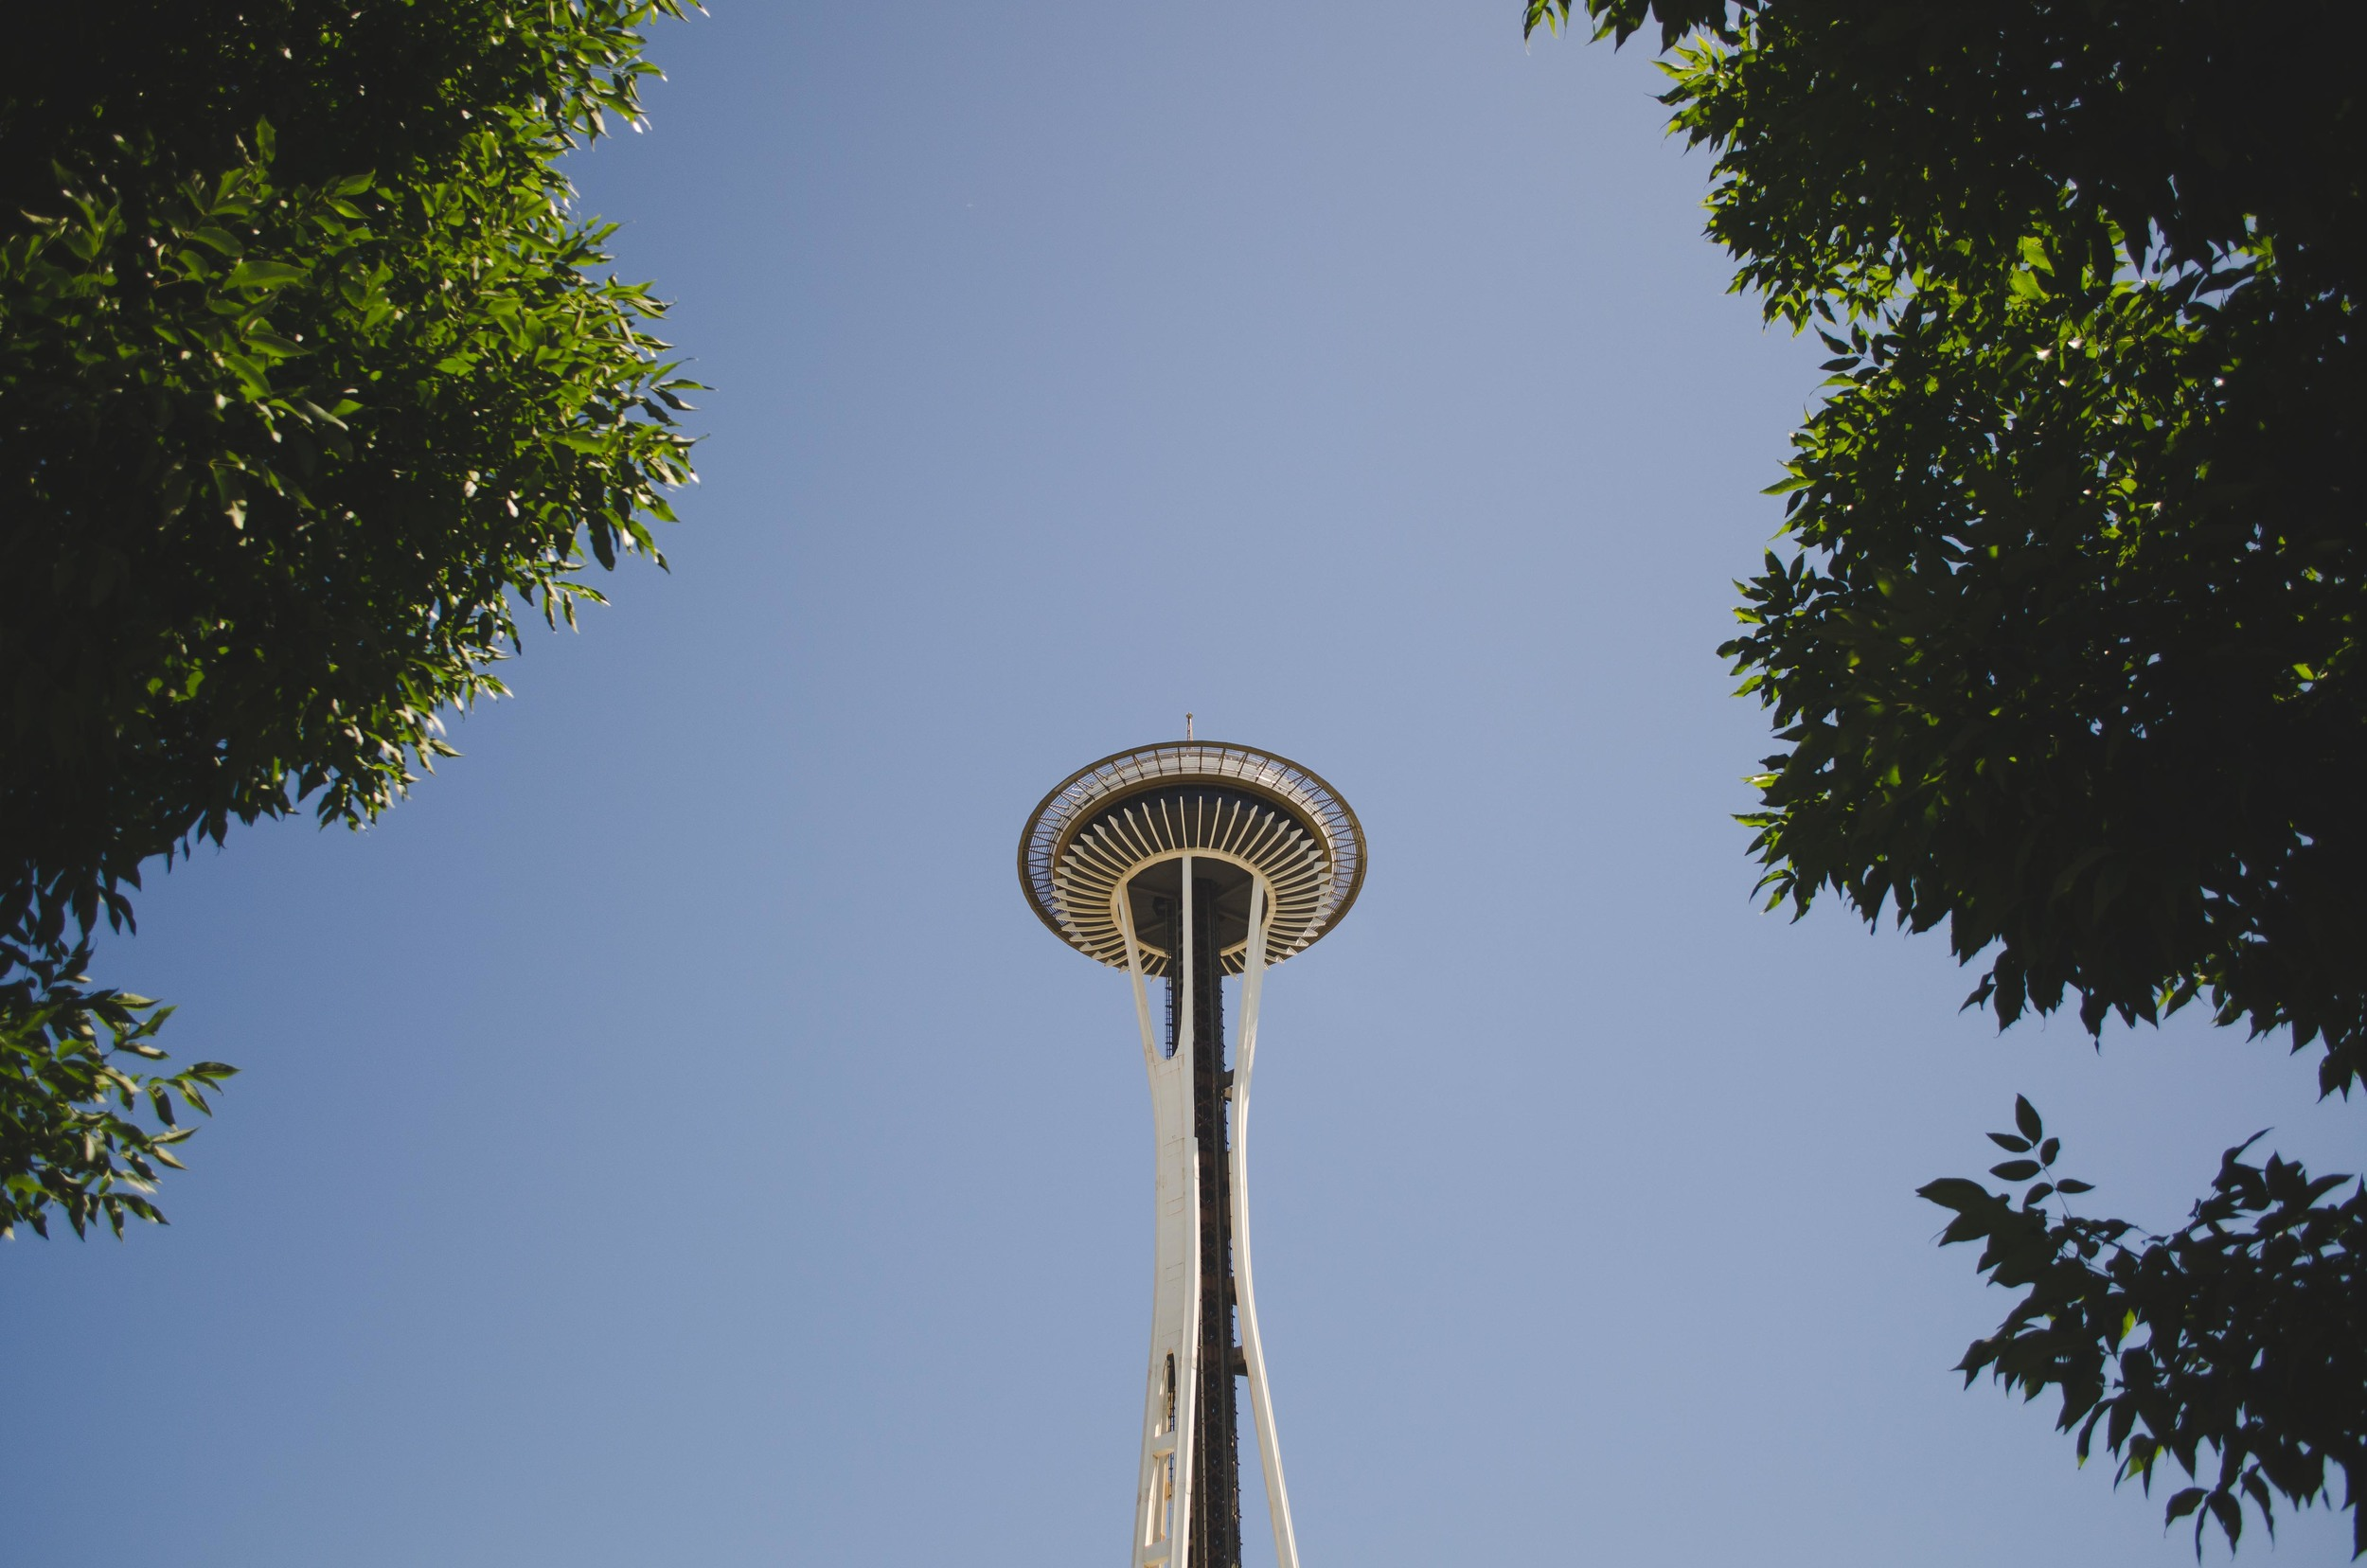 That landmark that's kinda popular...I think it's called the Galaxy Probe...or maybe it's the Space Needle...